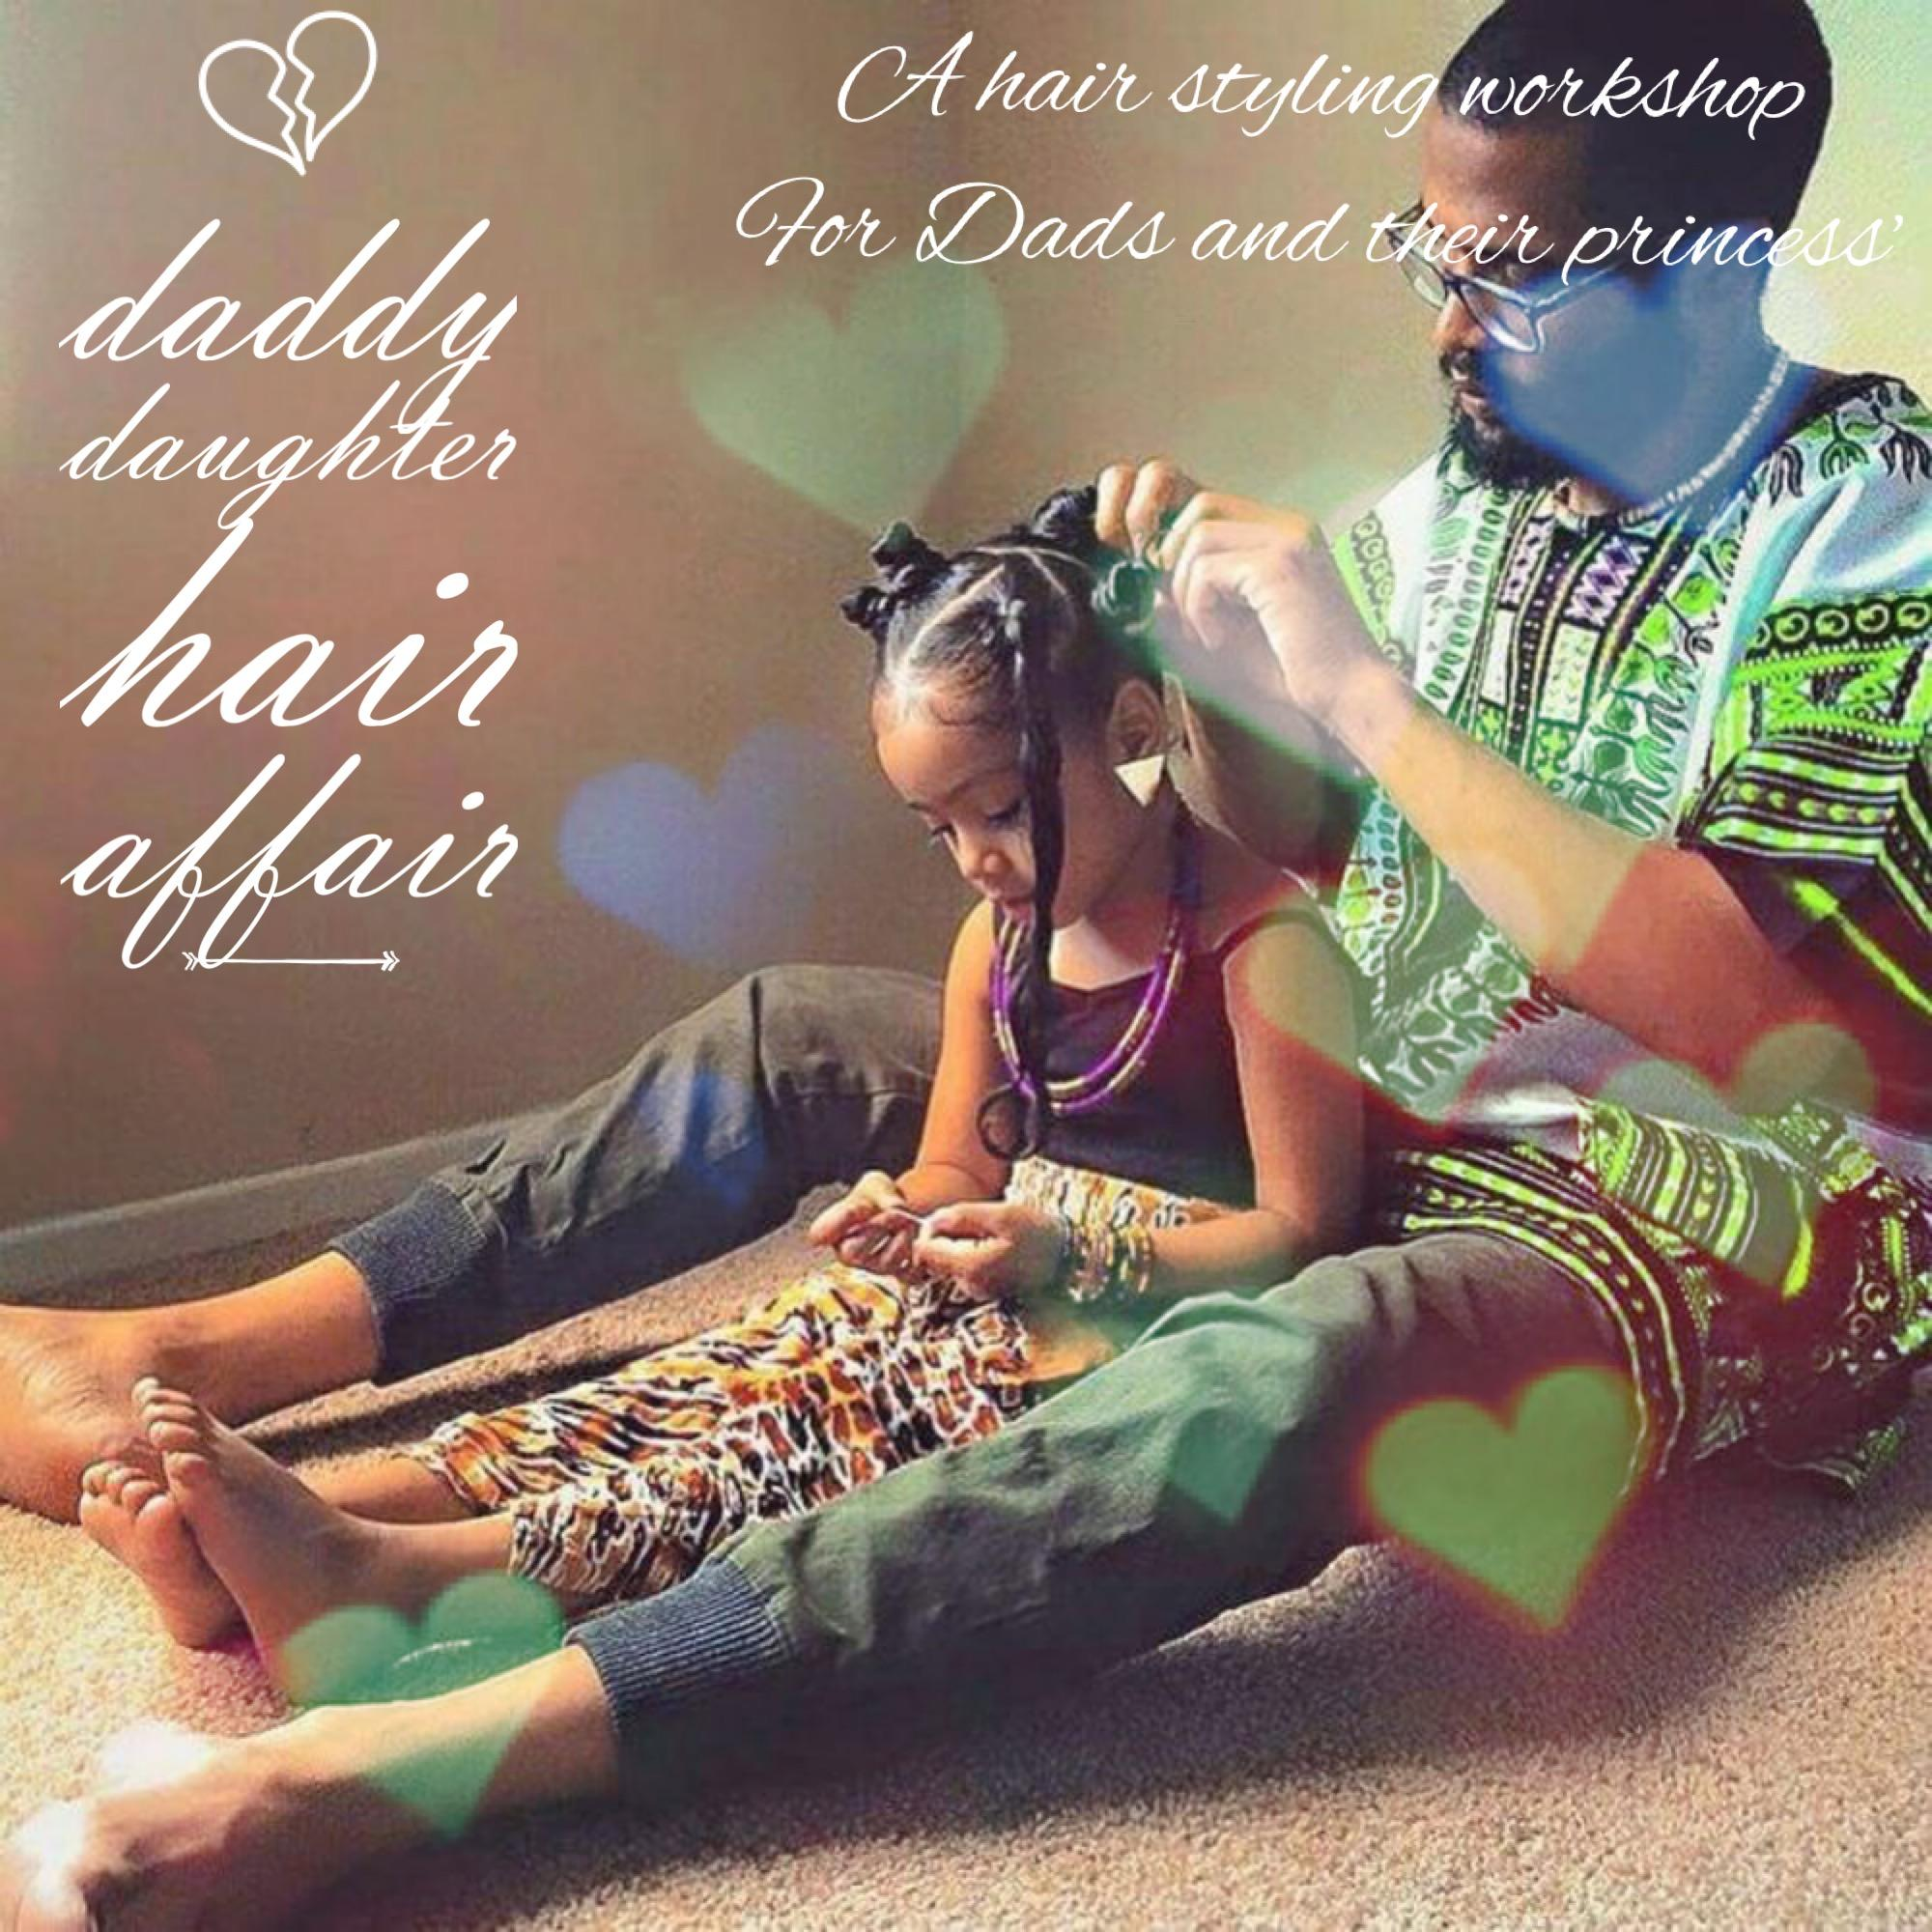 Daddy Daughter Hair Affair